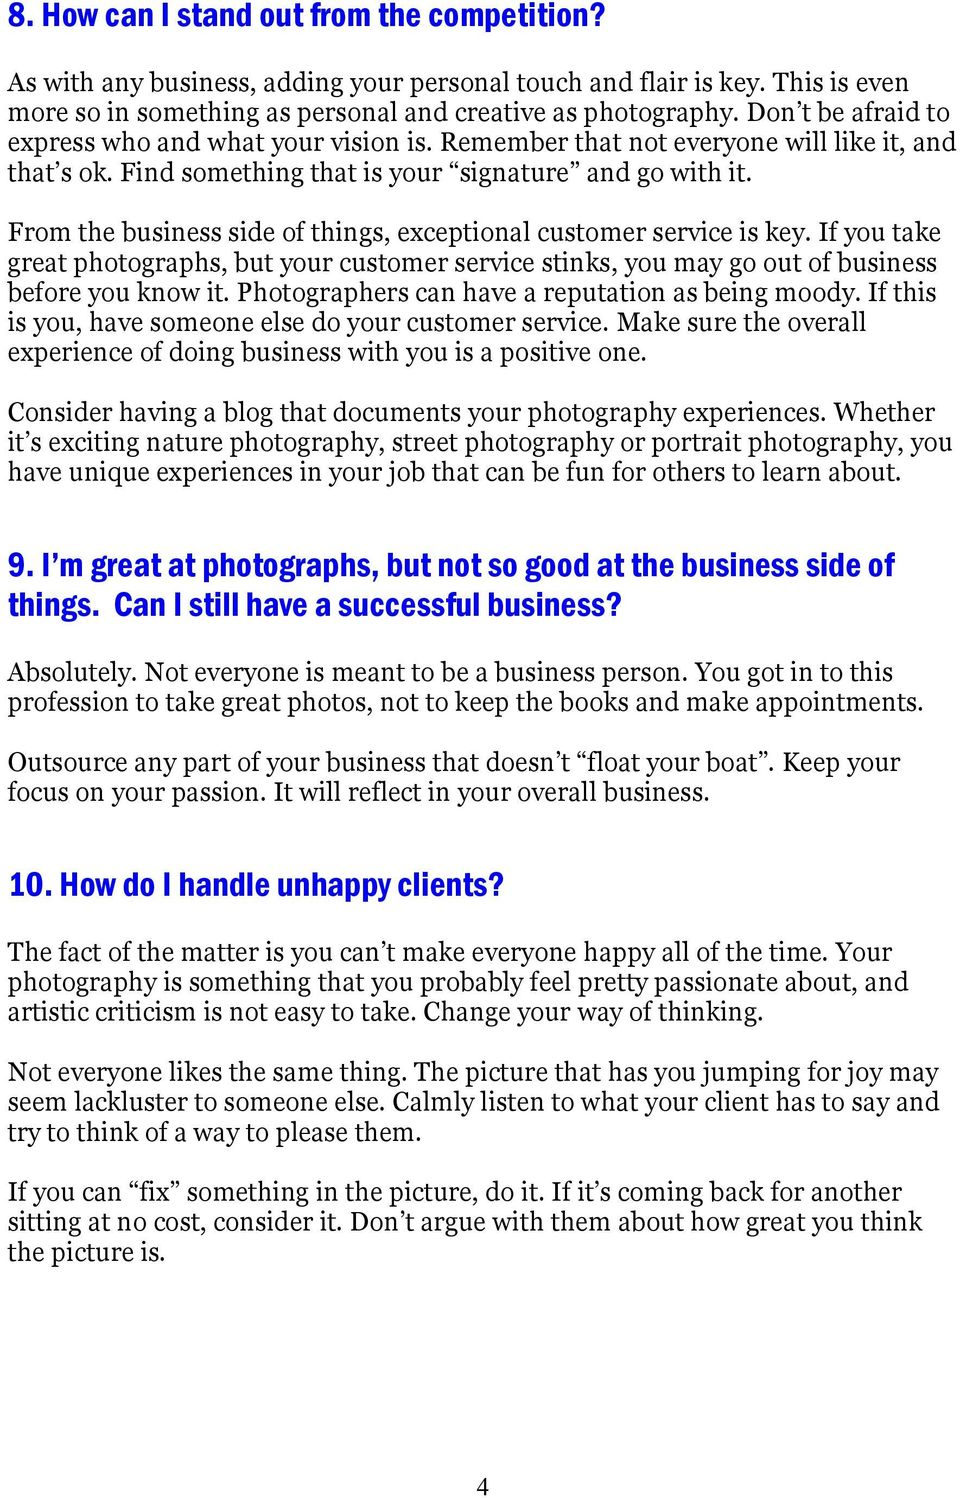 From the business side of things, exceptional customer service is key. If you take great photographs, but your customer service stinks, you may go out of business before you know it.